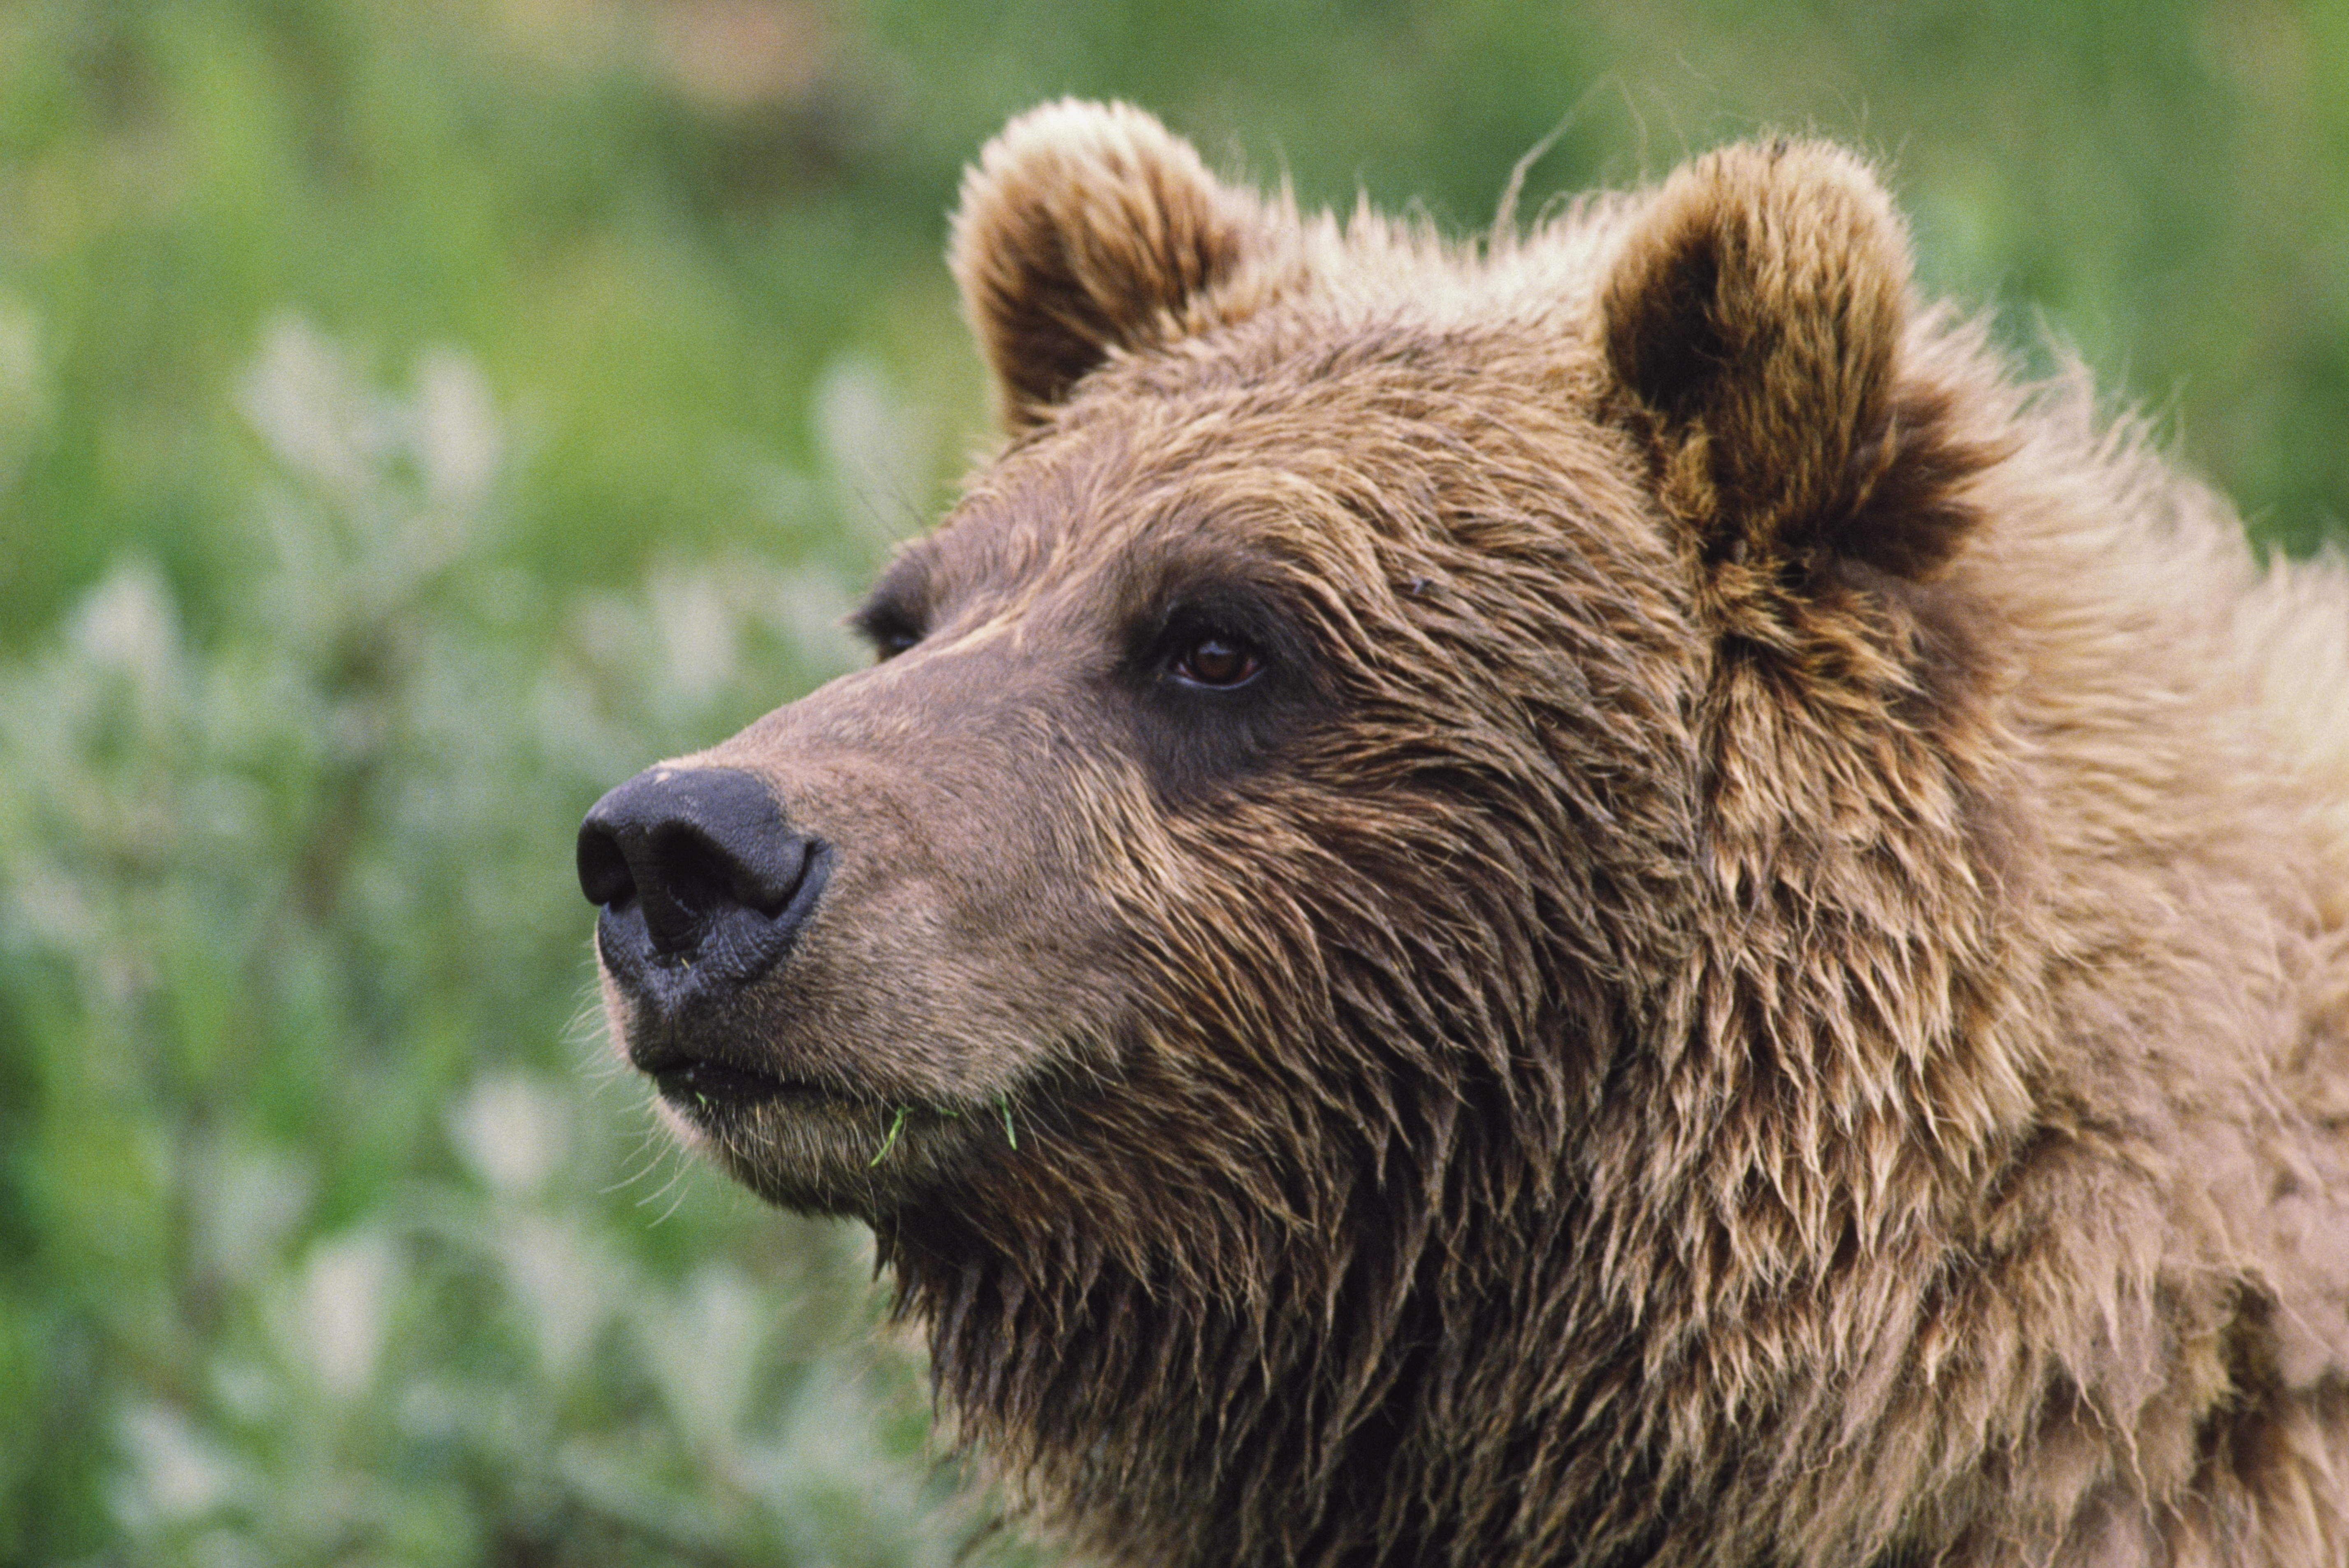 Bears Coming Out Of Hibernation Month Early After 'Abnormally' Warm Winter